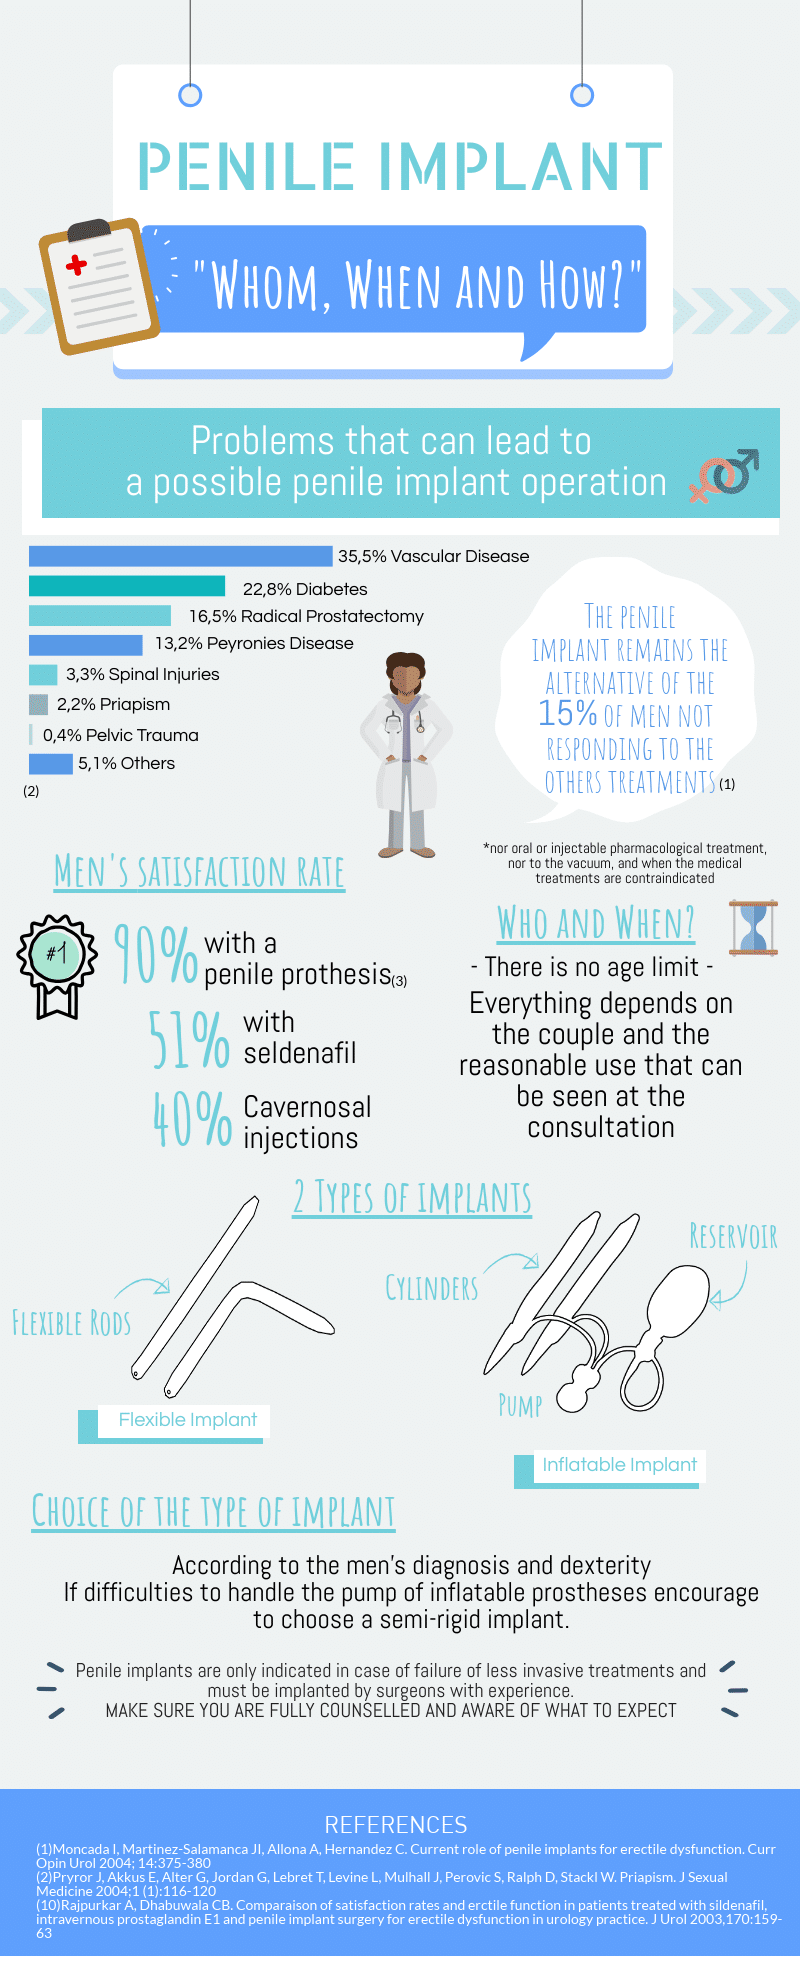 infography about when, how, what penile implant